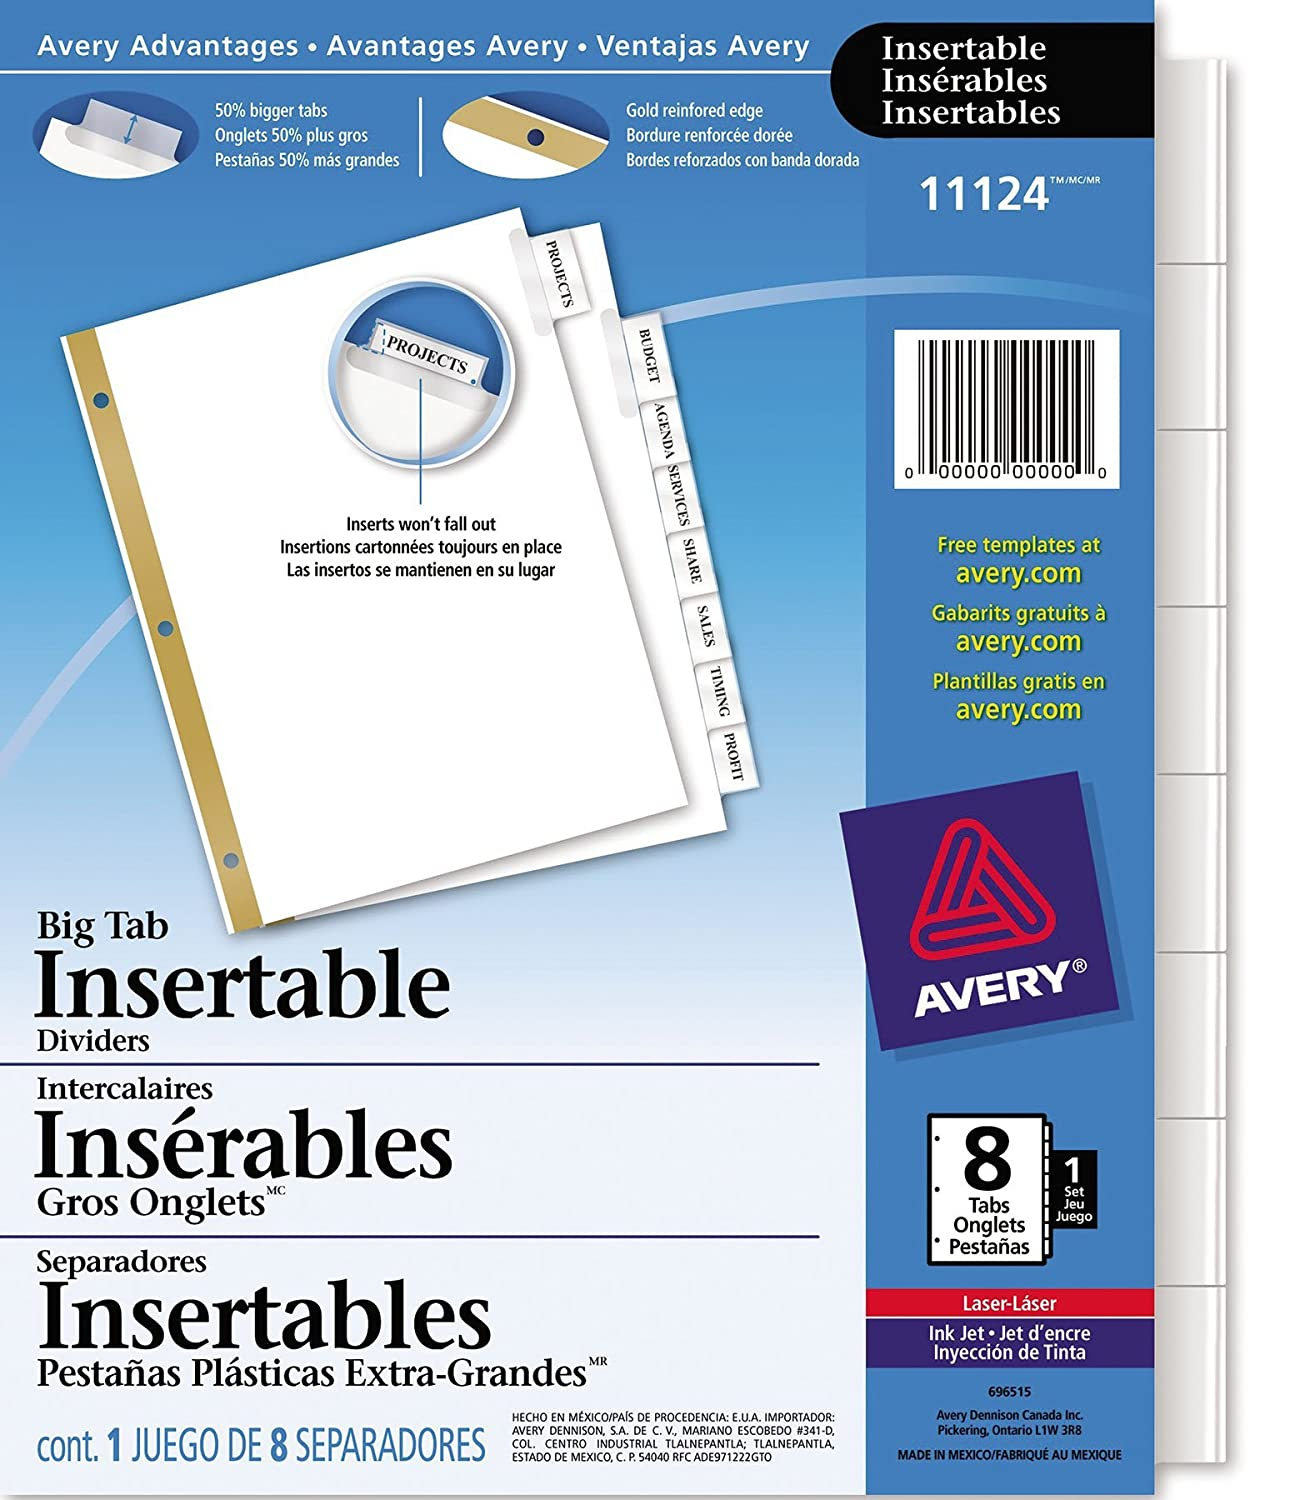 amazoncom avery big tab insertable dividers 8 clear tabs 1 set 11124 binder index dividers office